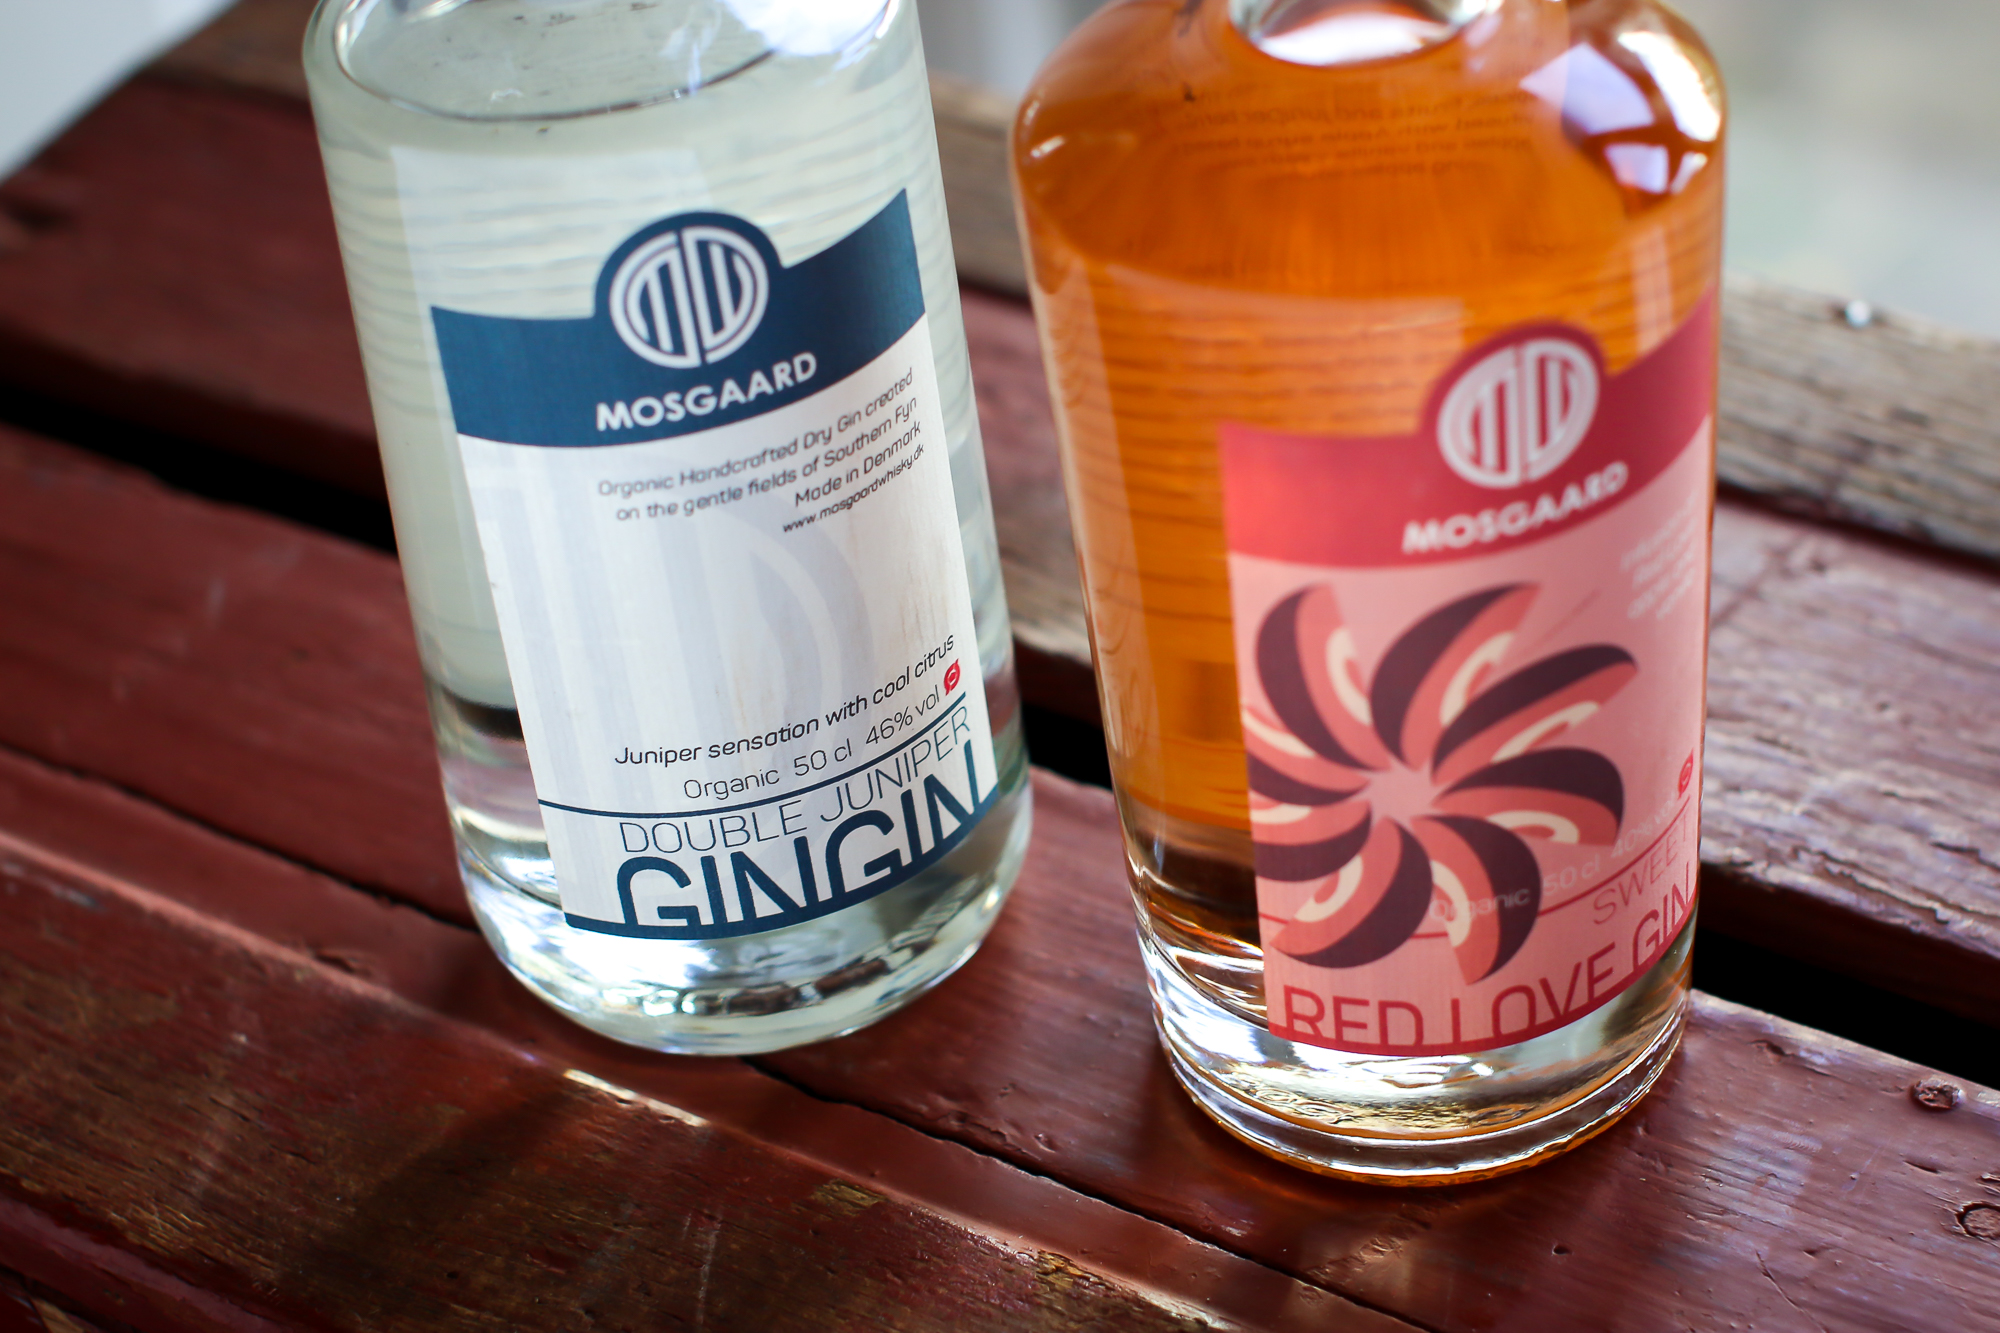 Mosgaard Red Love Gin og Mosgaard GinGin. Photo by Michael Sperling.